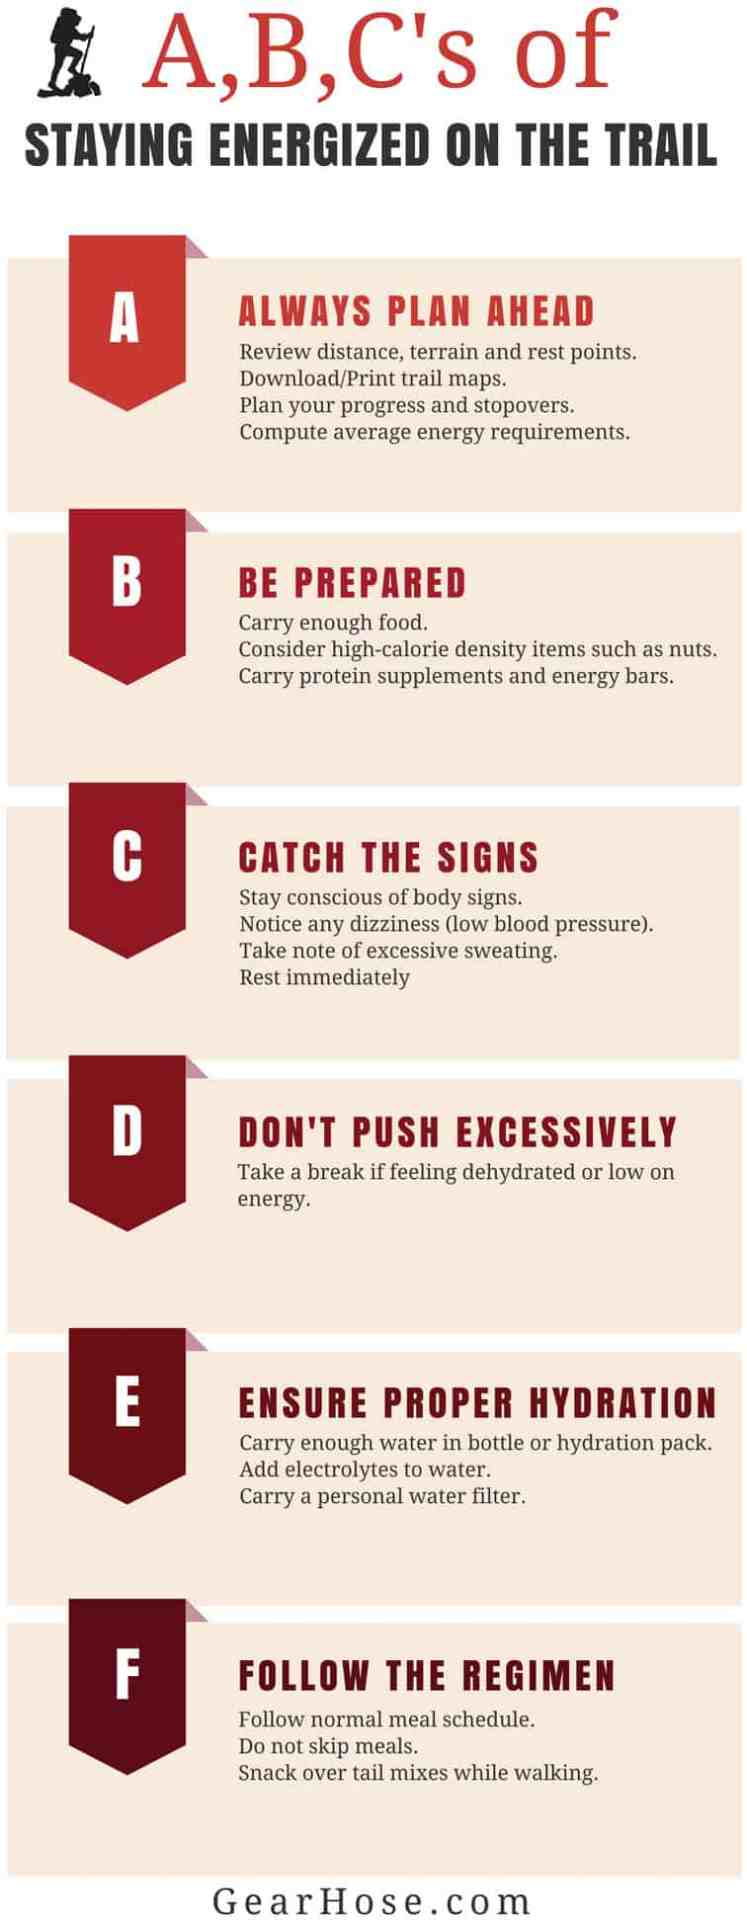 The ABC of staying energized on the trail